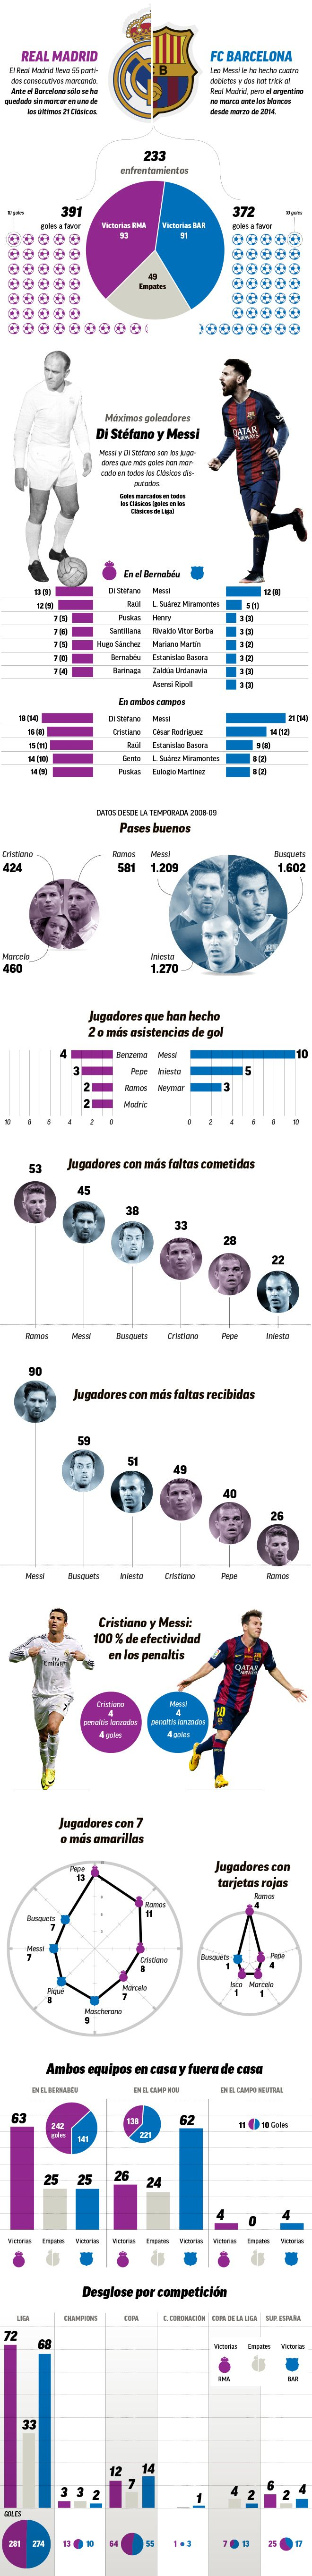 Marca inforgraphic on Clasicos - pretty impressive! Link straight to image since some people were unable to see it.